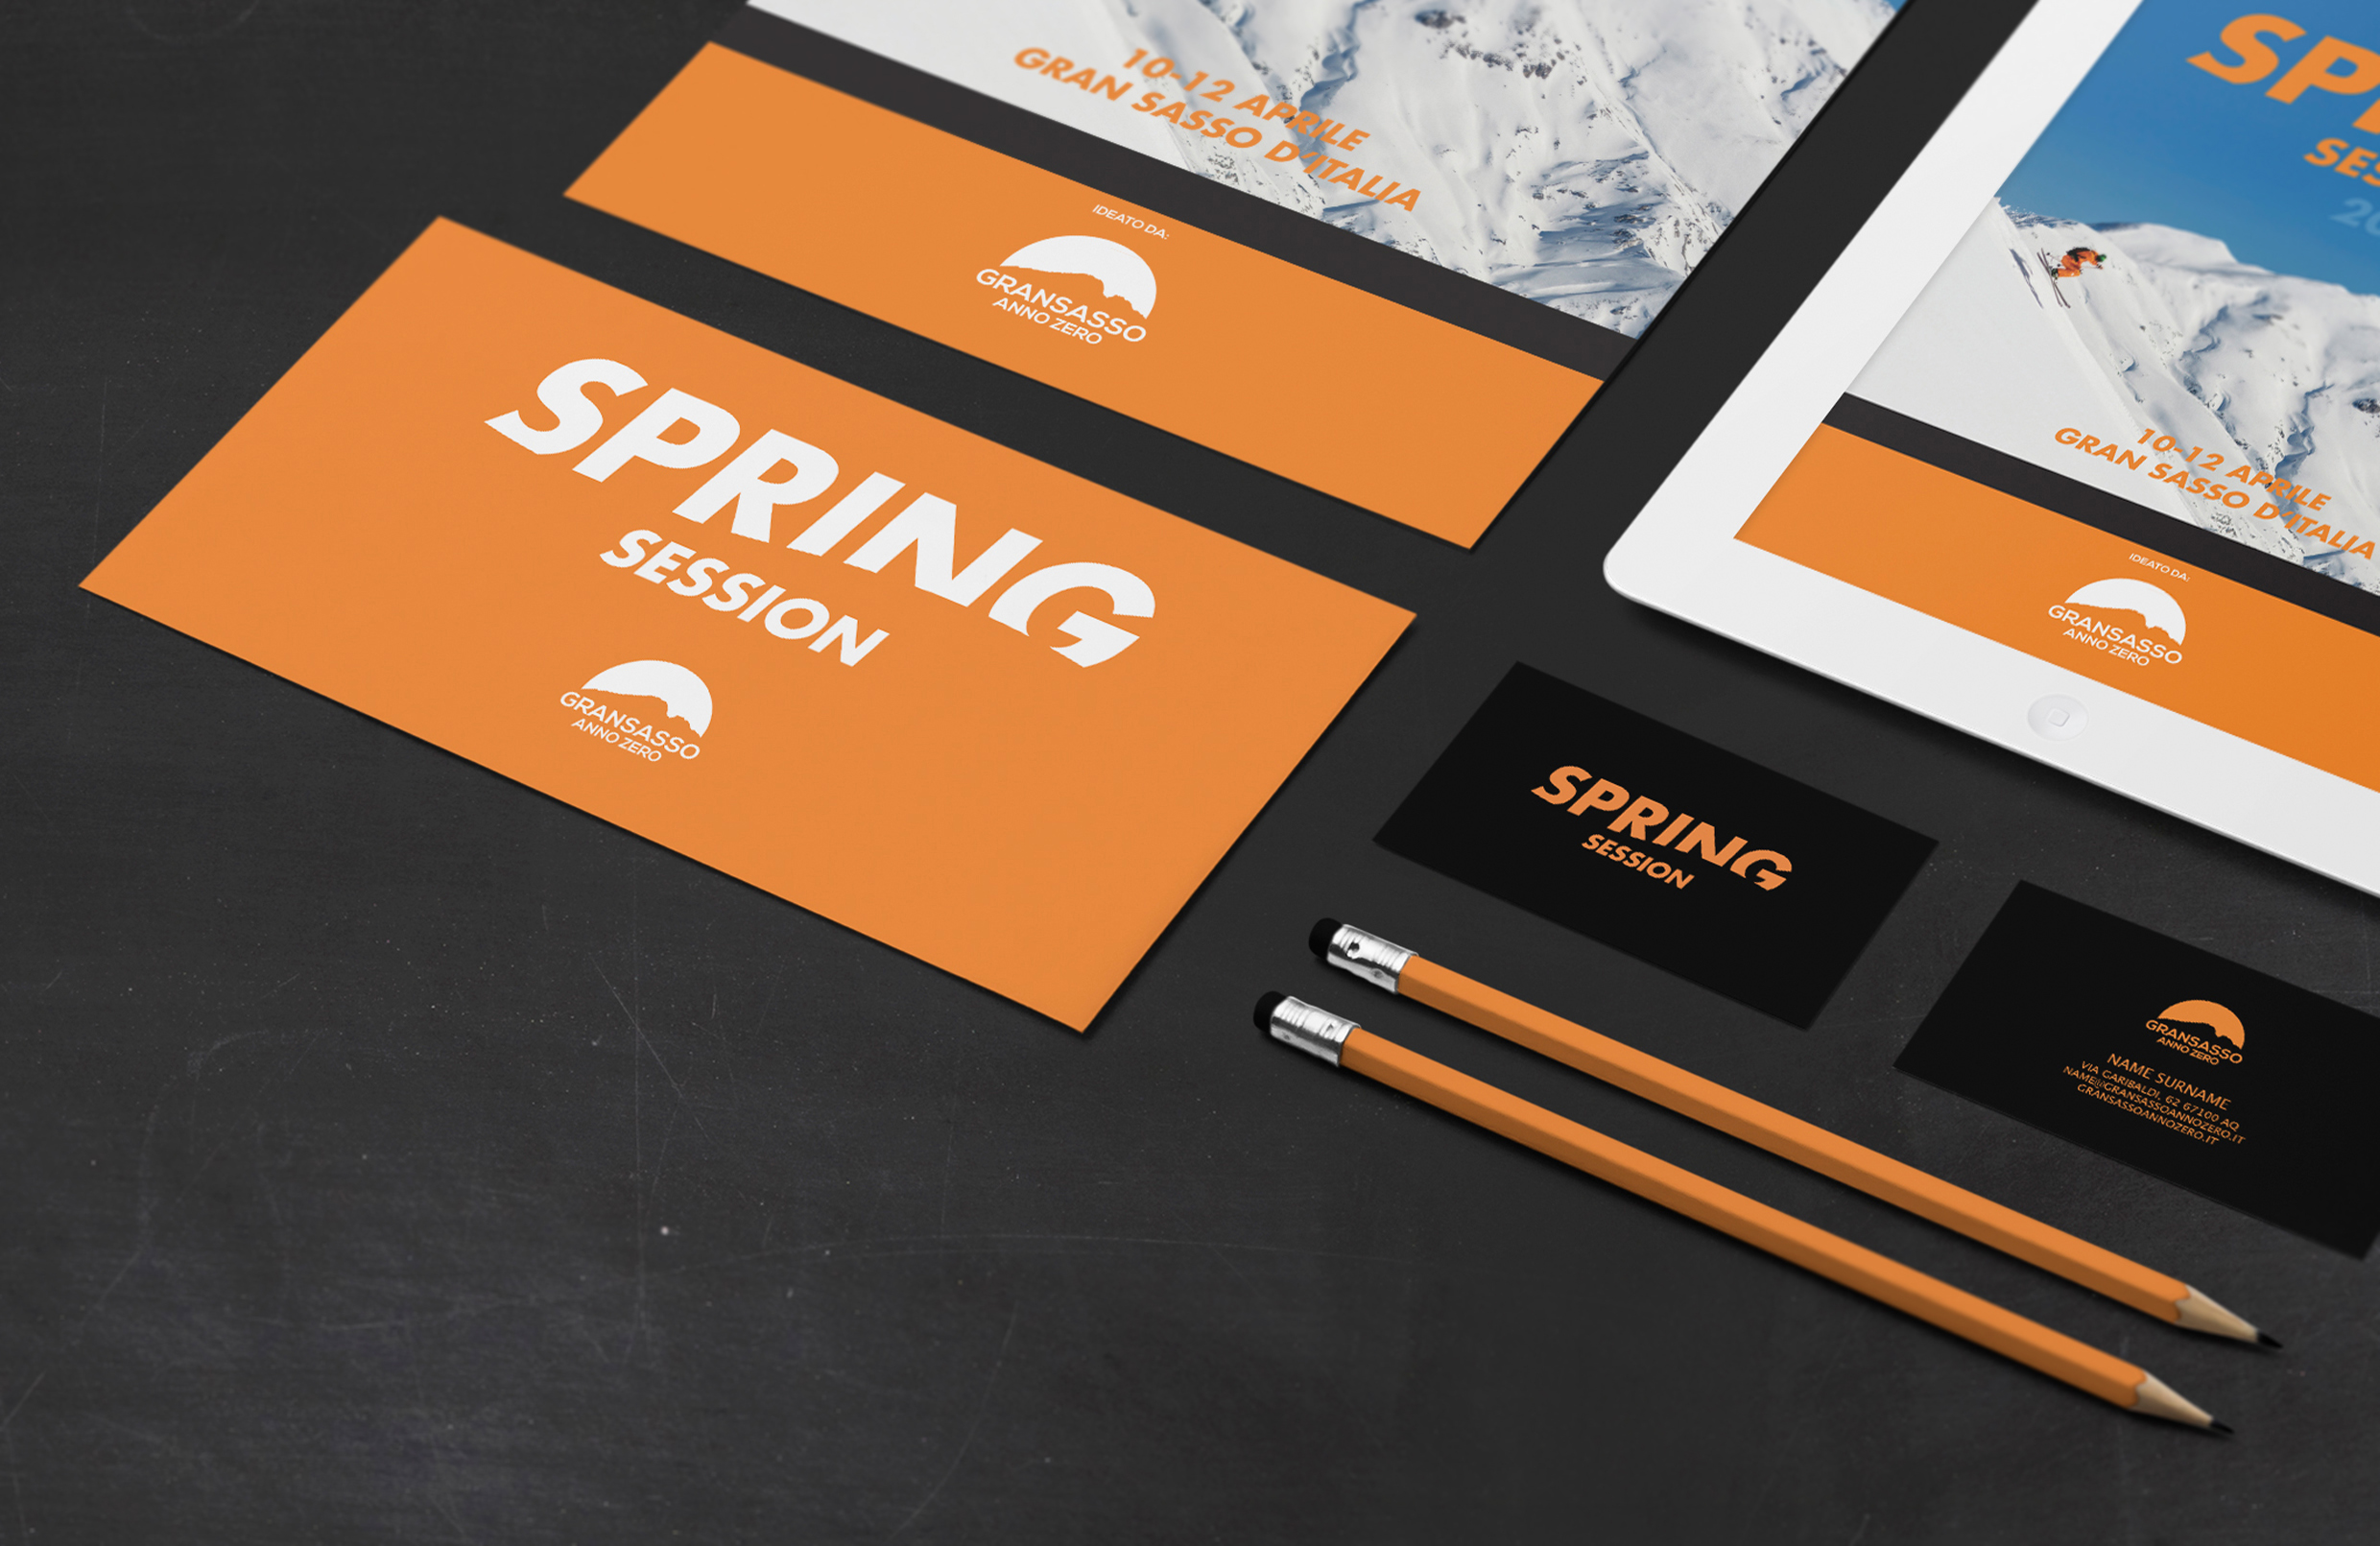 GEMINIWEB - IMAGE - STATIONERY - SPRING SESSION 1